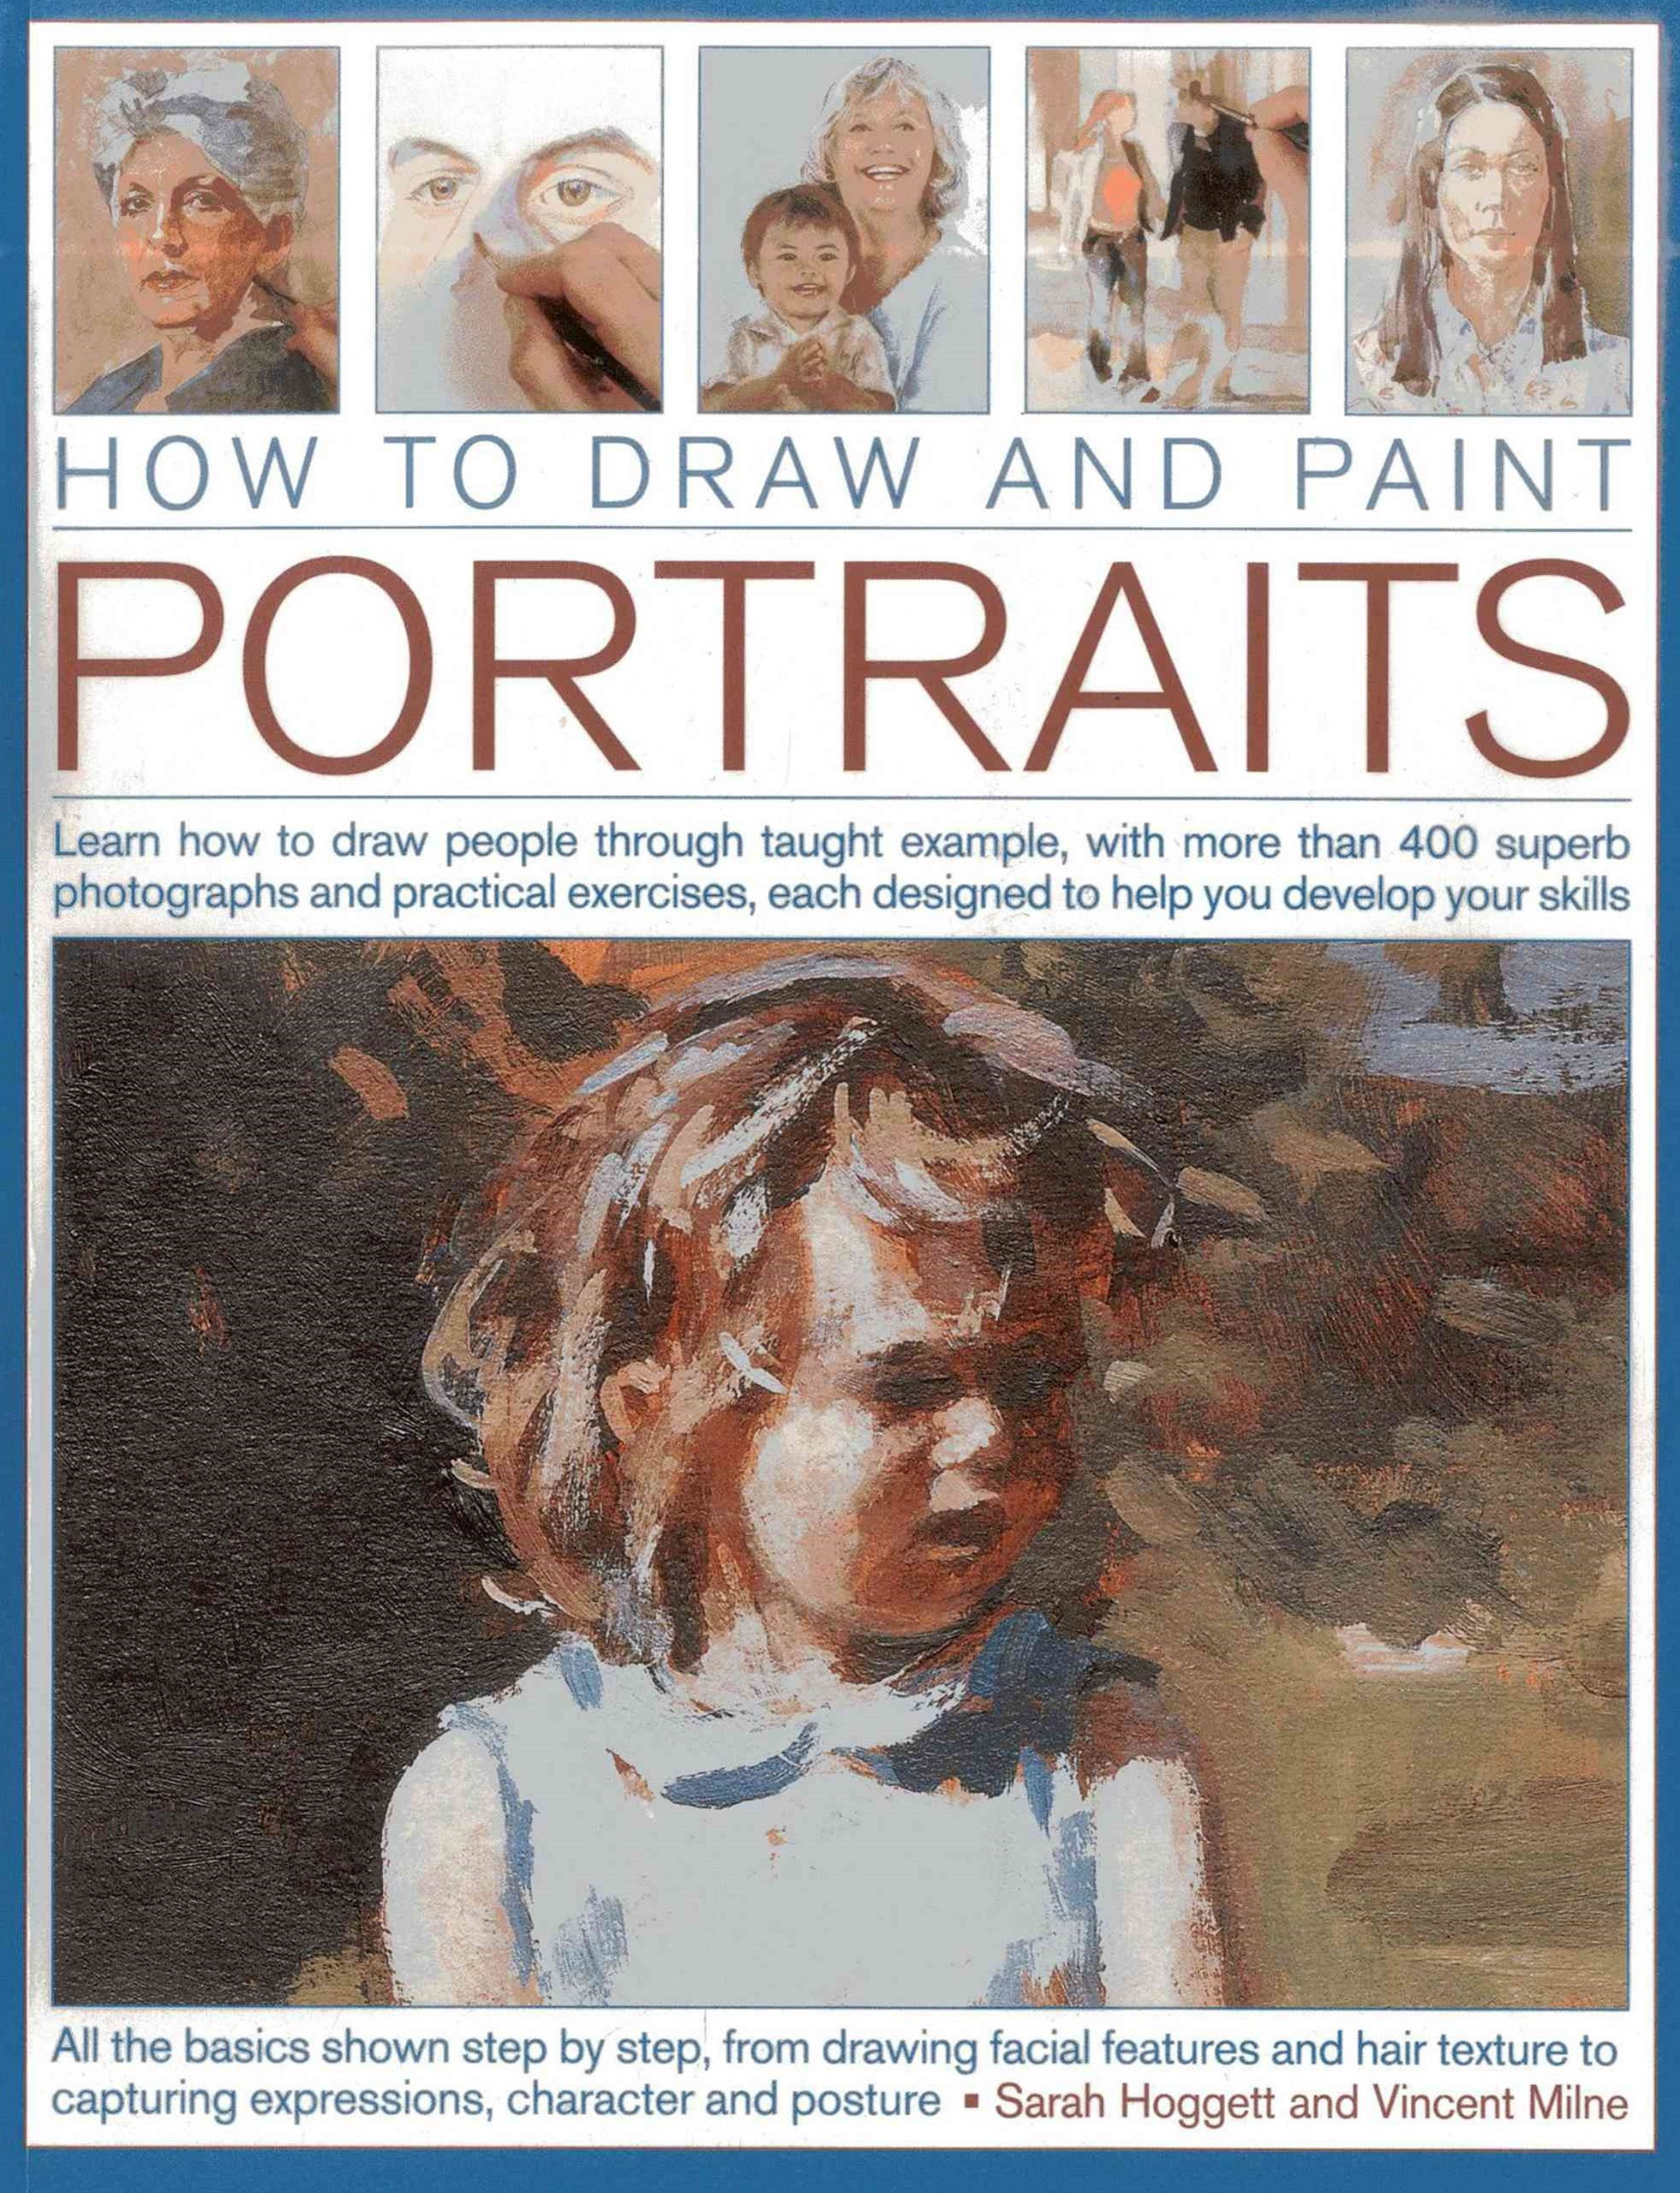 How to Draw and Paint Portraits